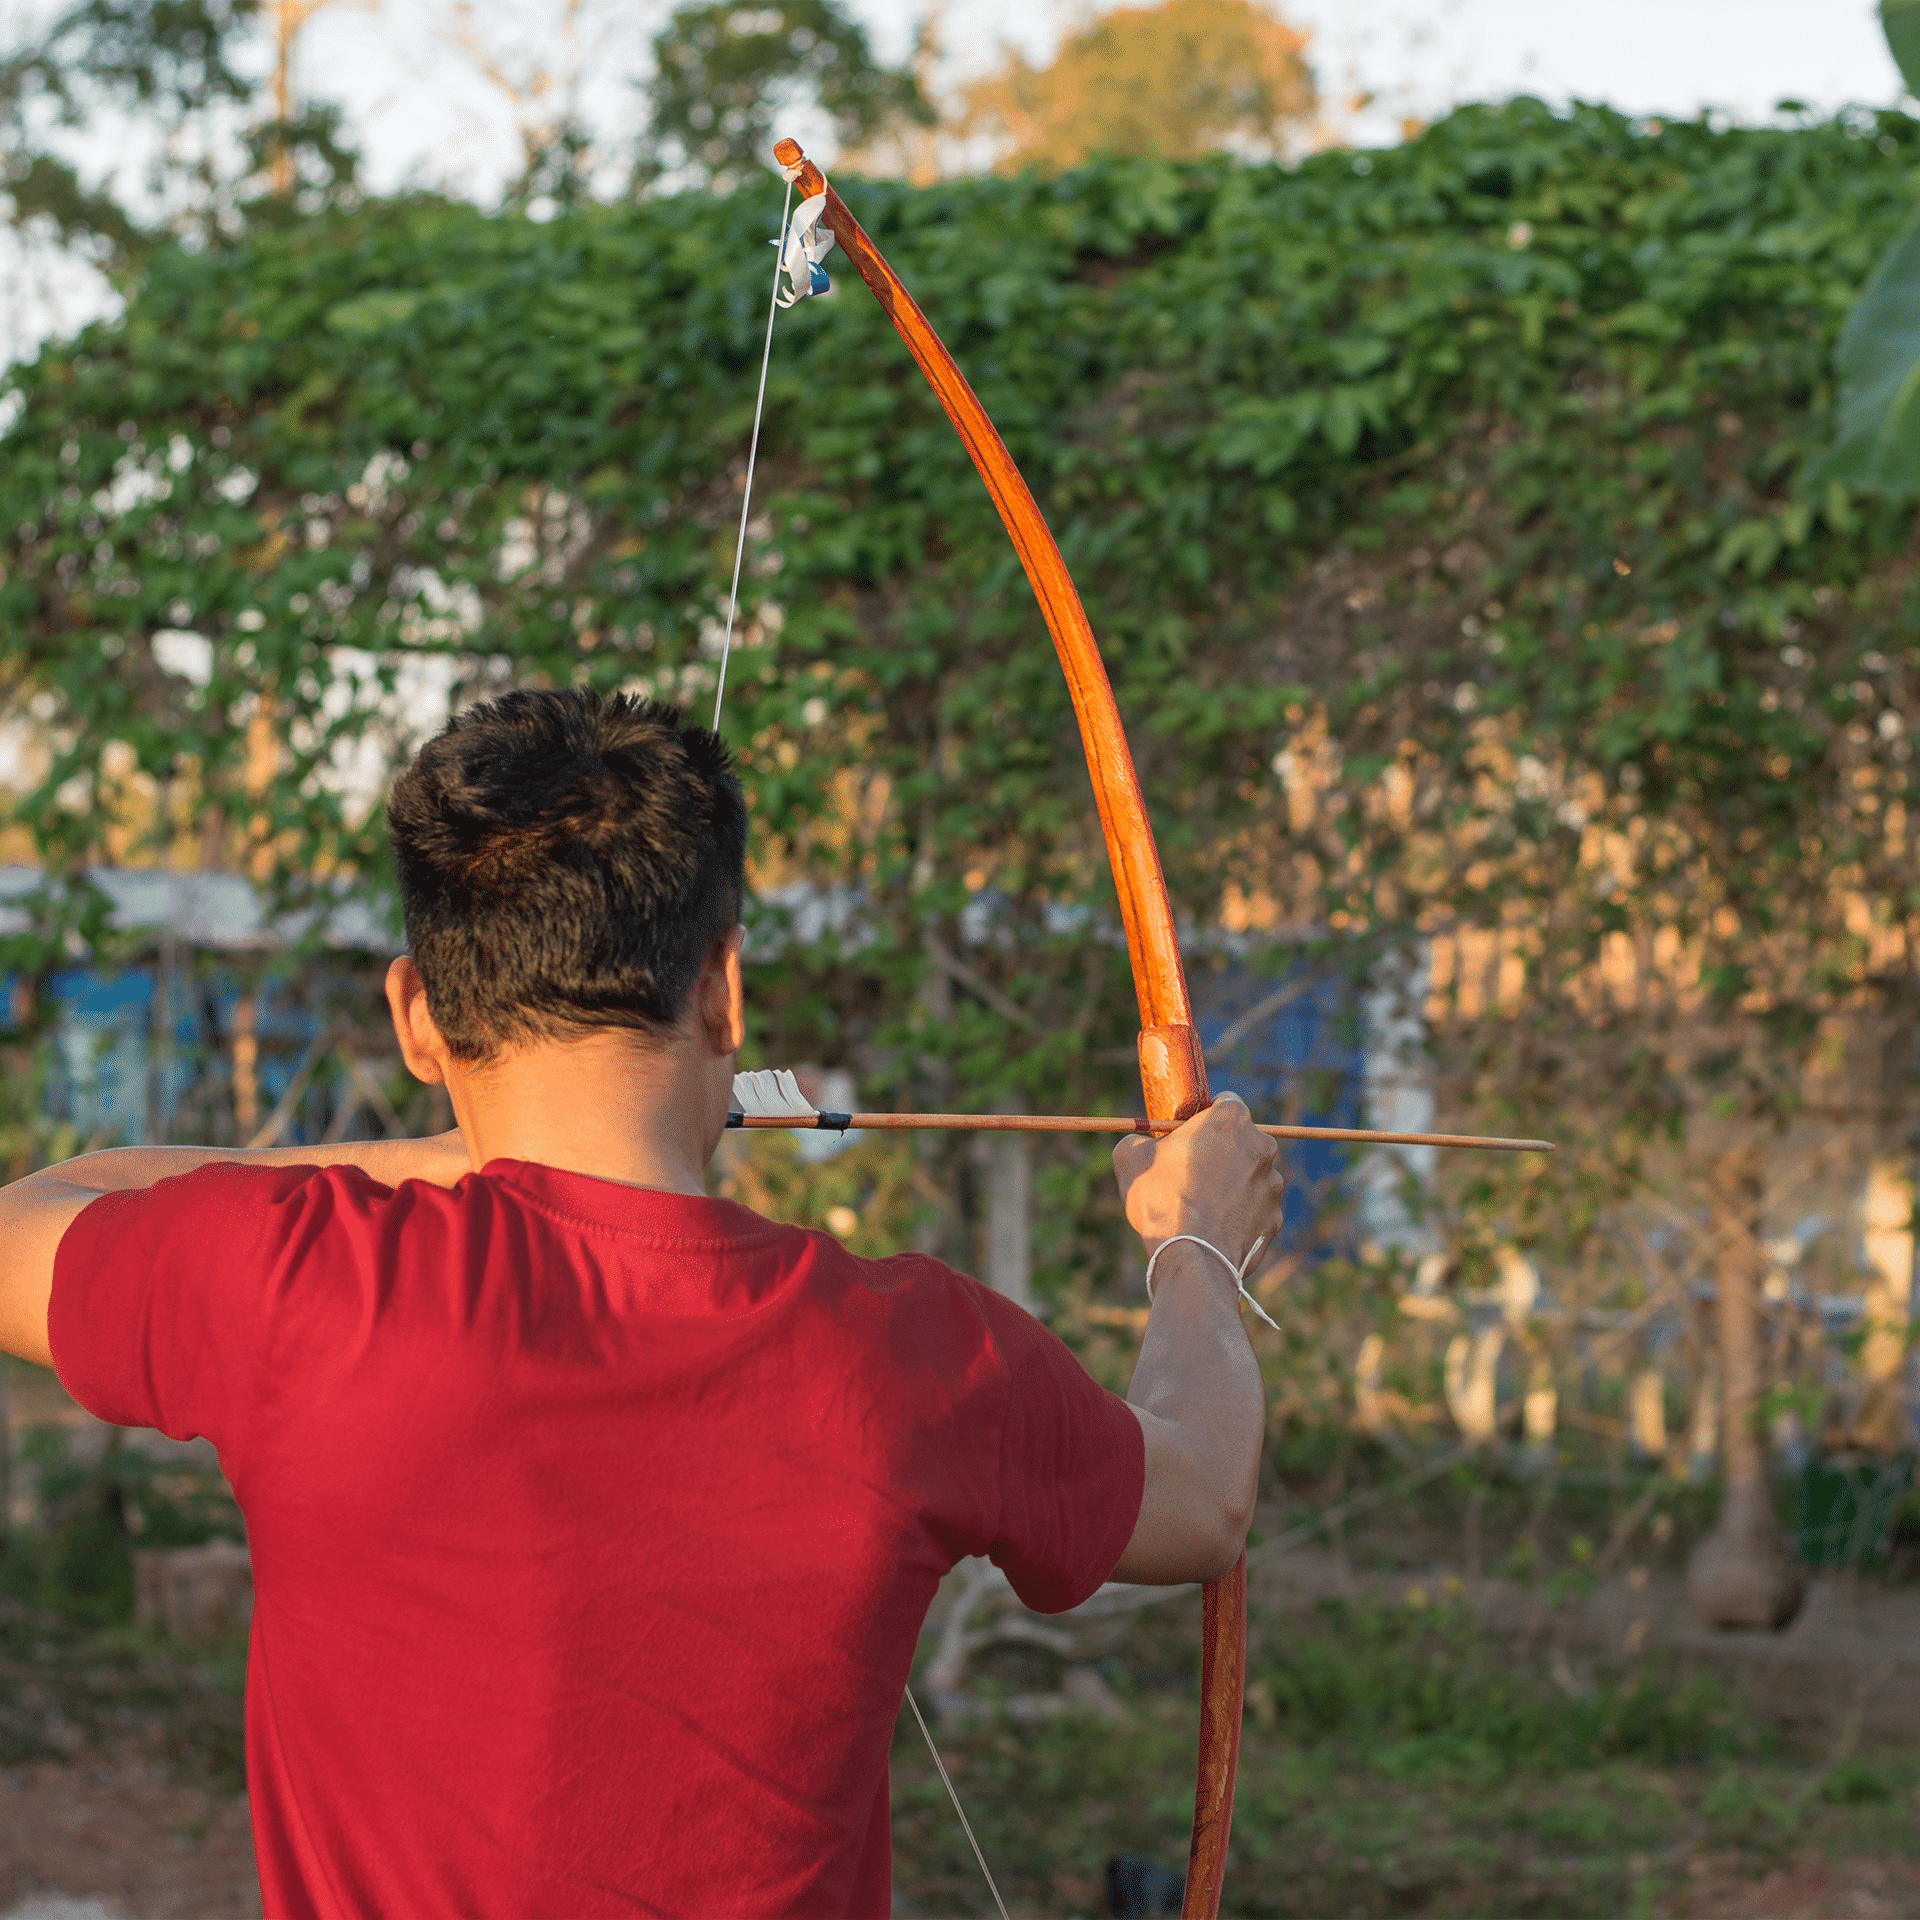 A traditional Archery Bow consists of bows and a bowstring with arrow